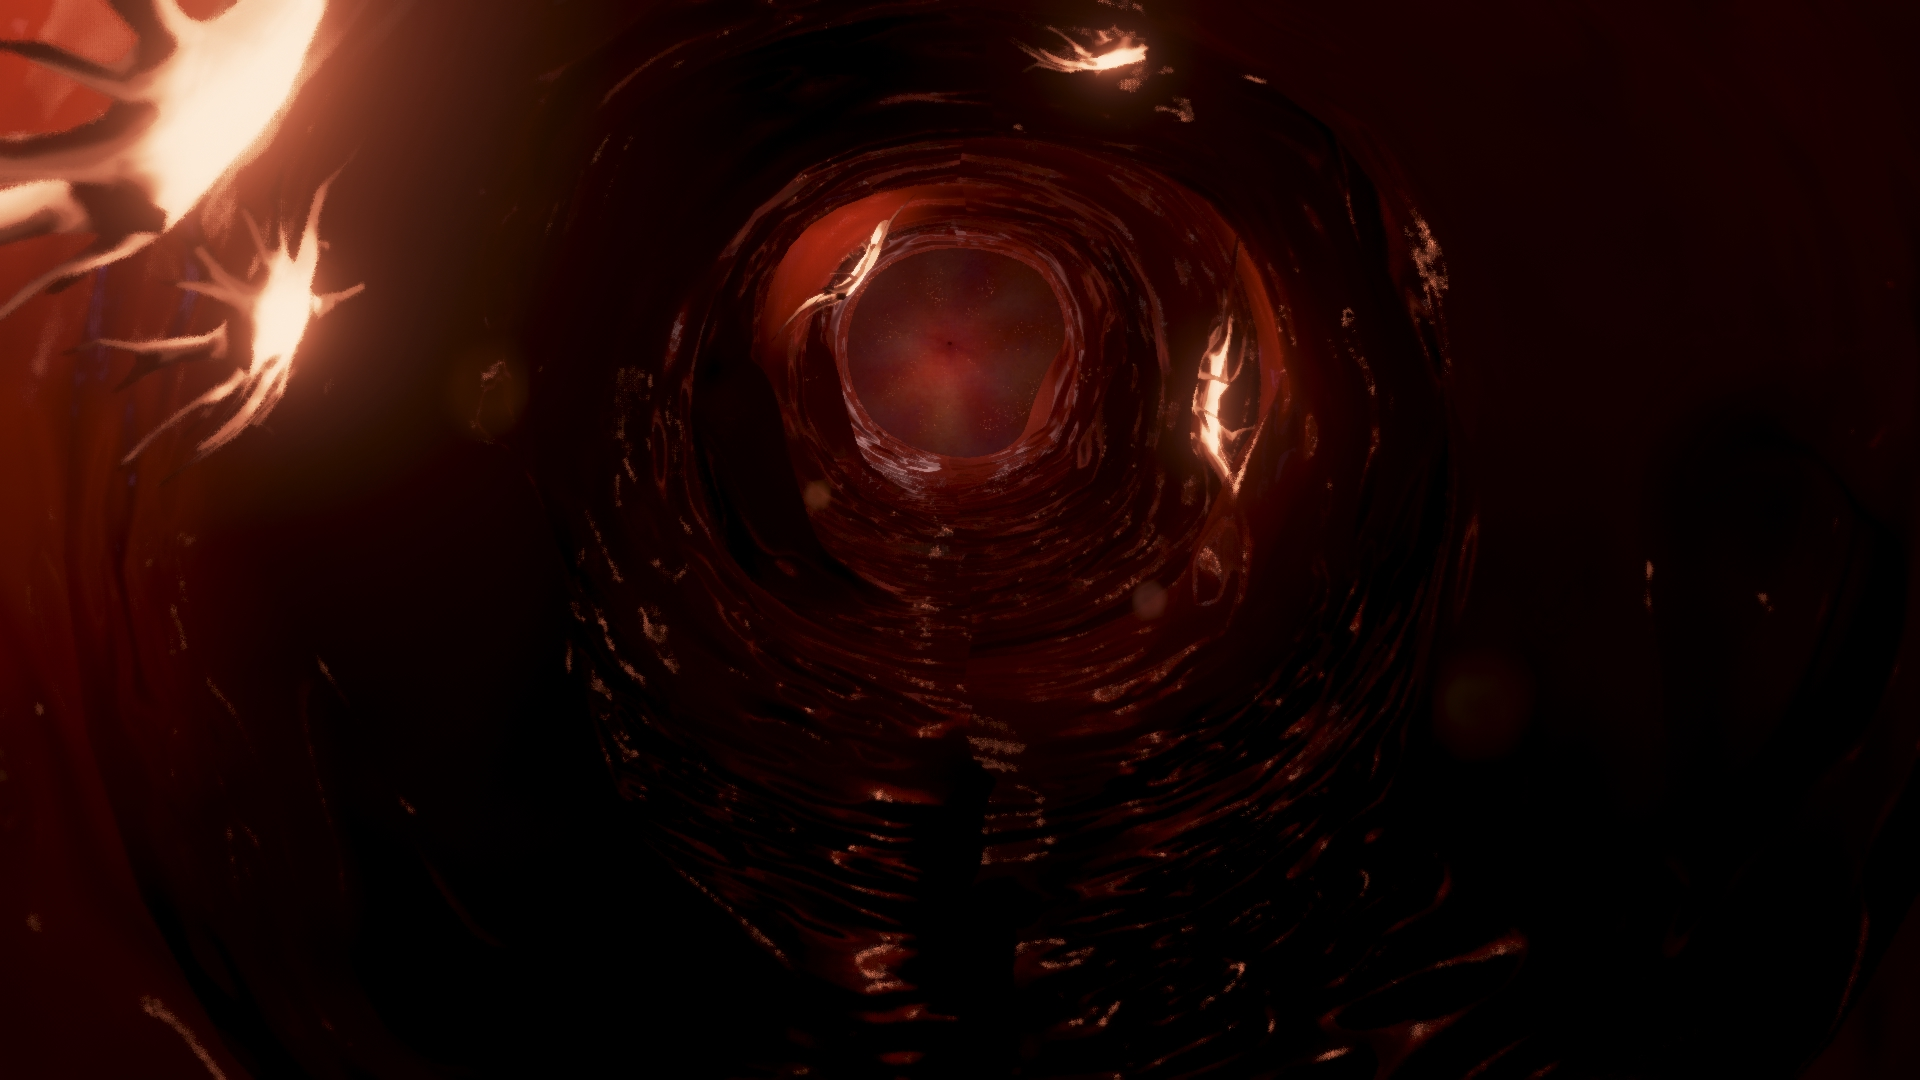 Still shot from one of the cinematic renders.